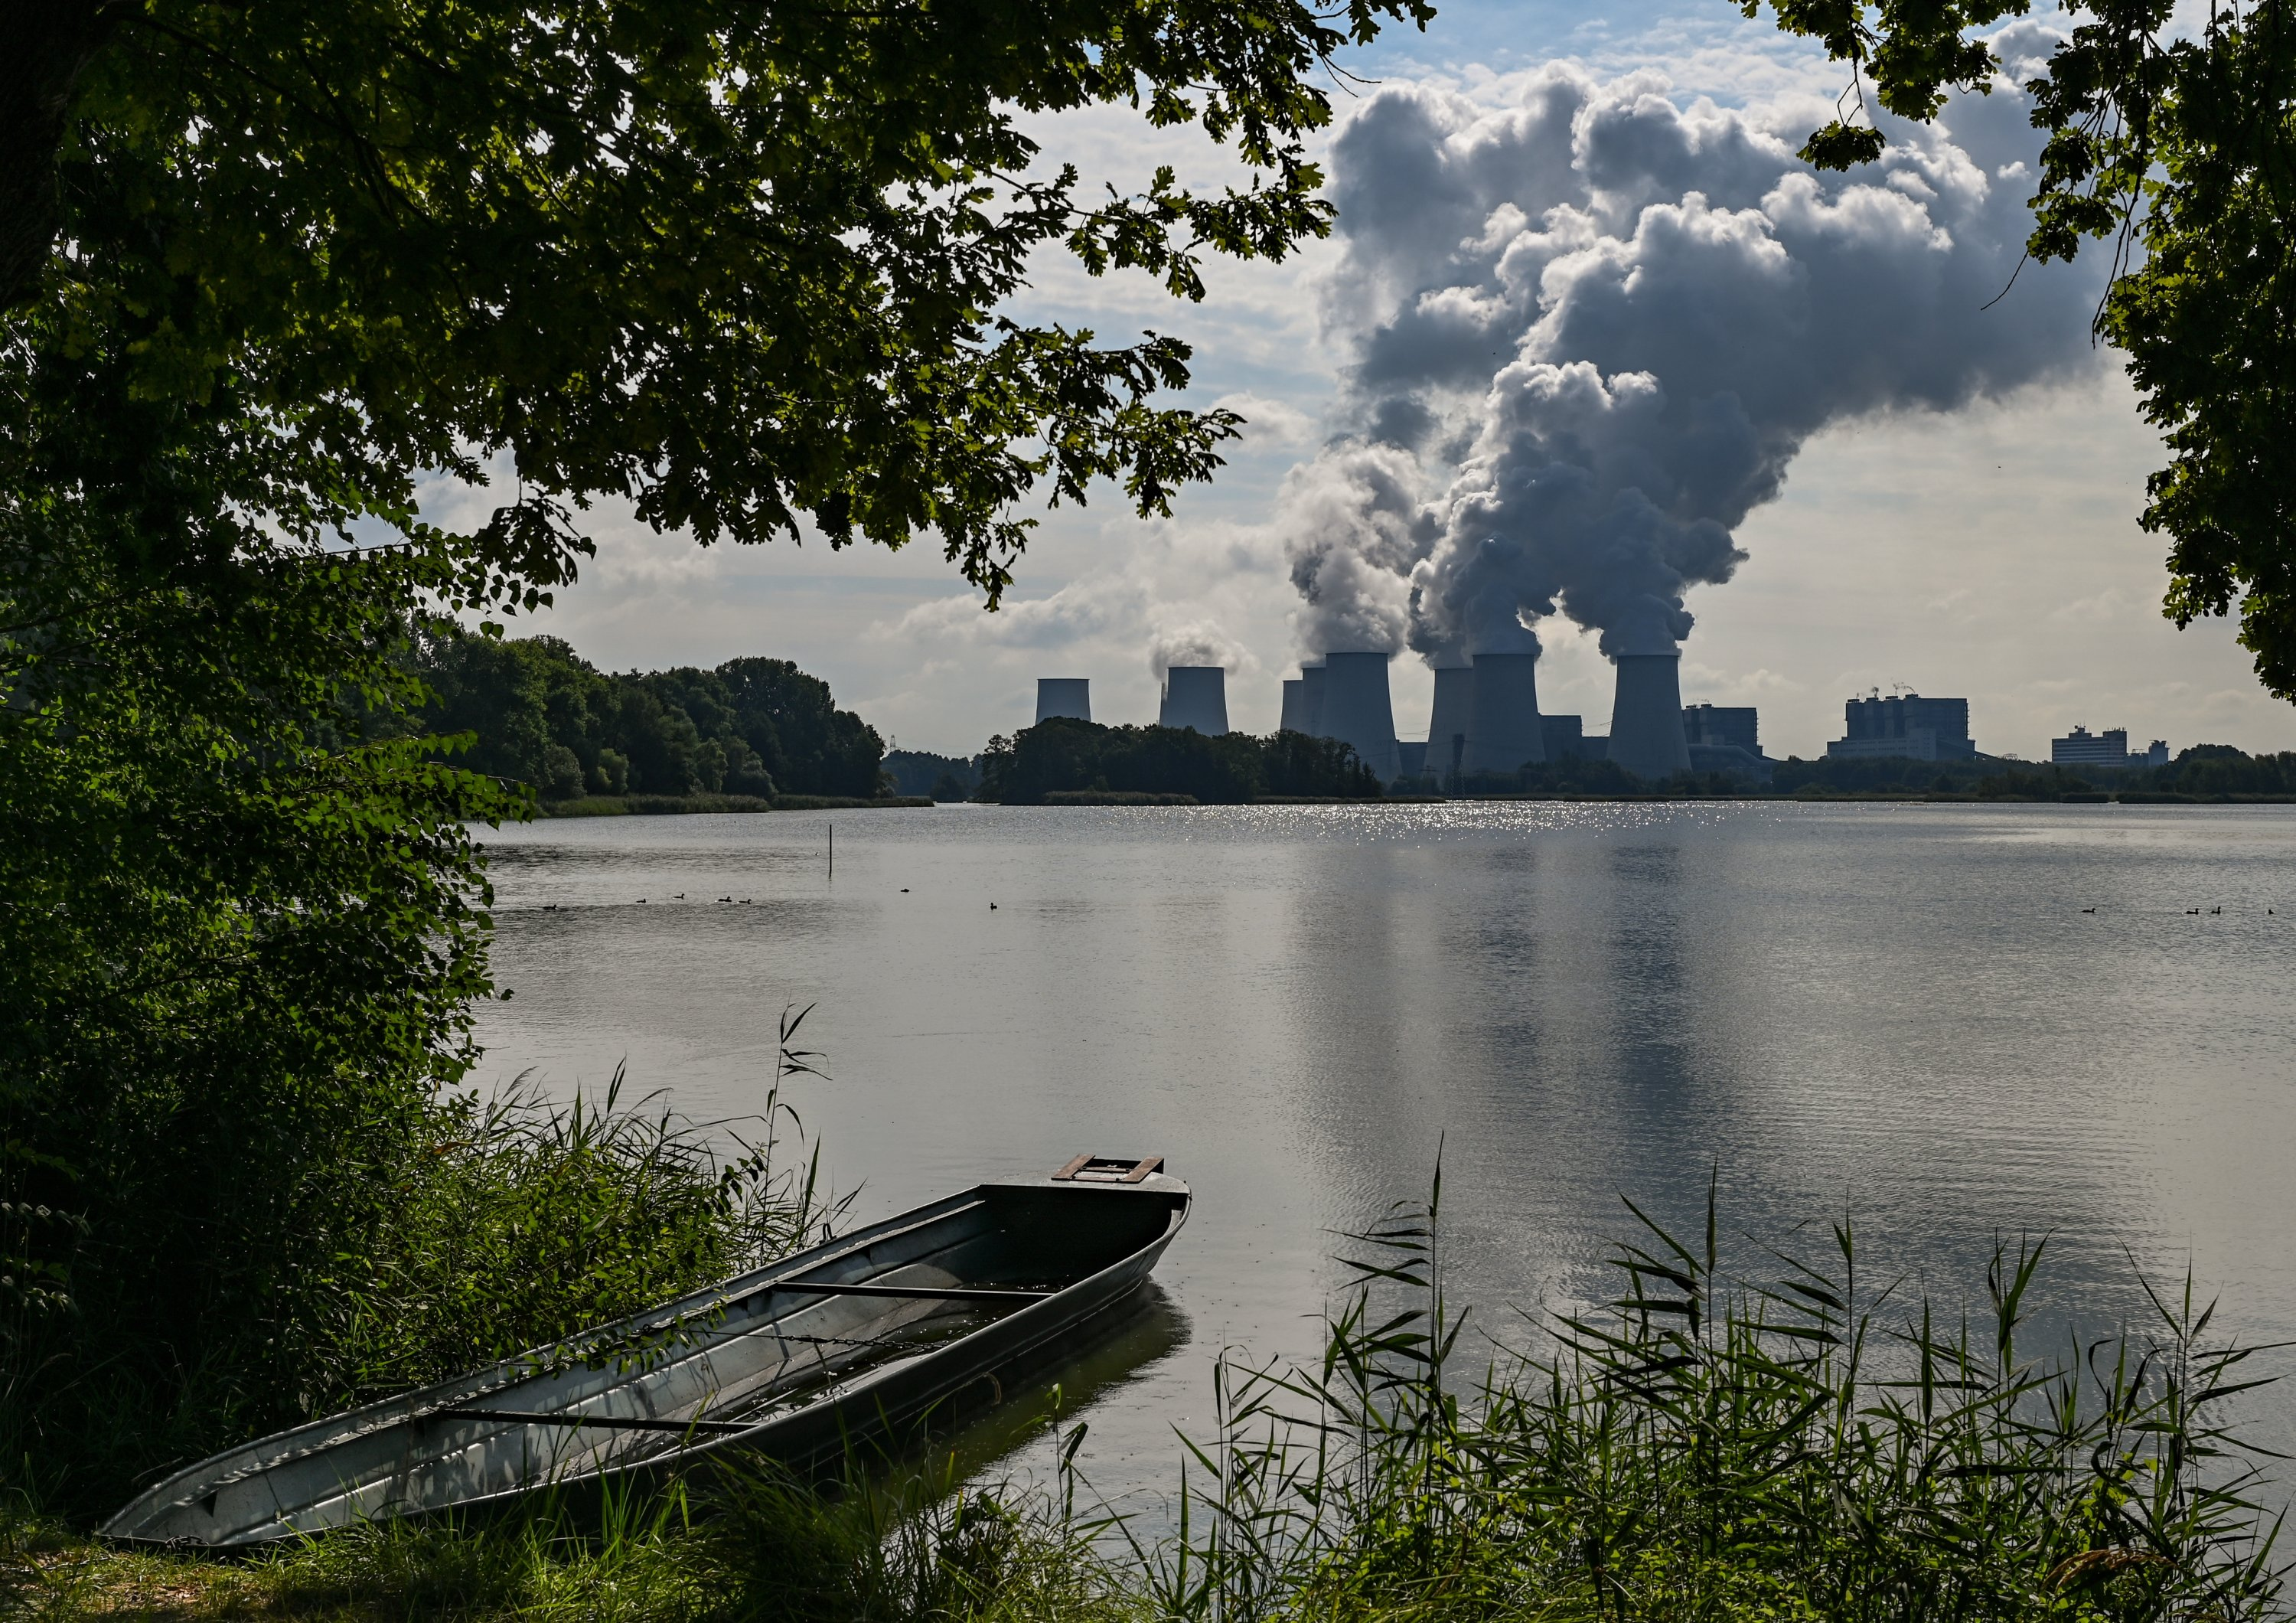 Water vapor rises from the cooling towers of the Jänschwalde lignite-fired power plant of Lausitzer Energie Bergbau AG (LEAG), Brandenburg, Peitz, Germany, Aug. 19, 2020. (Photo by Getty Images)